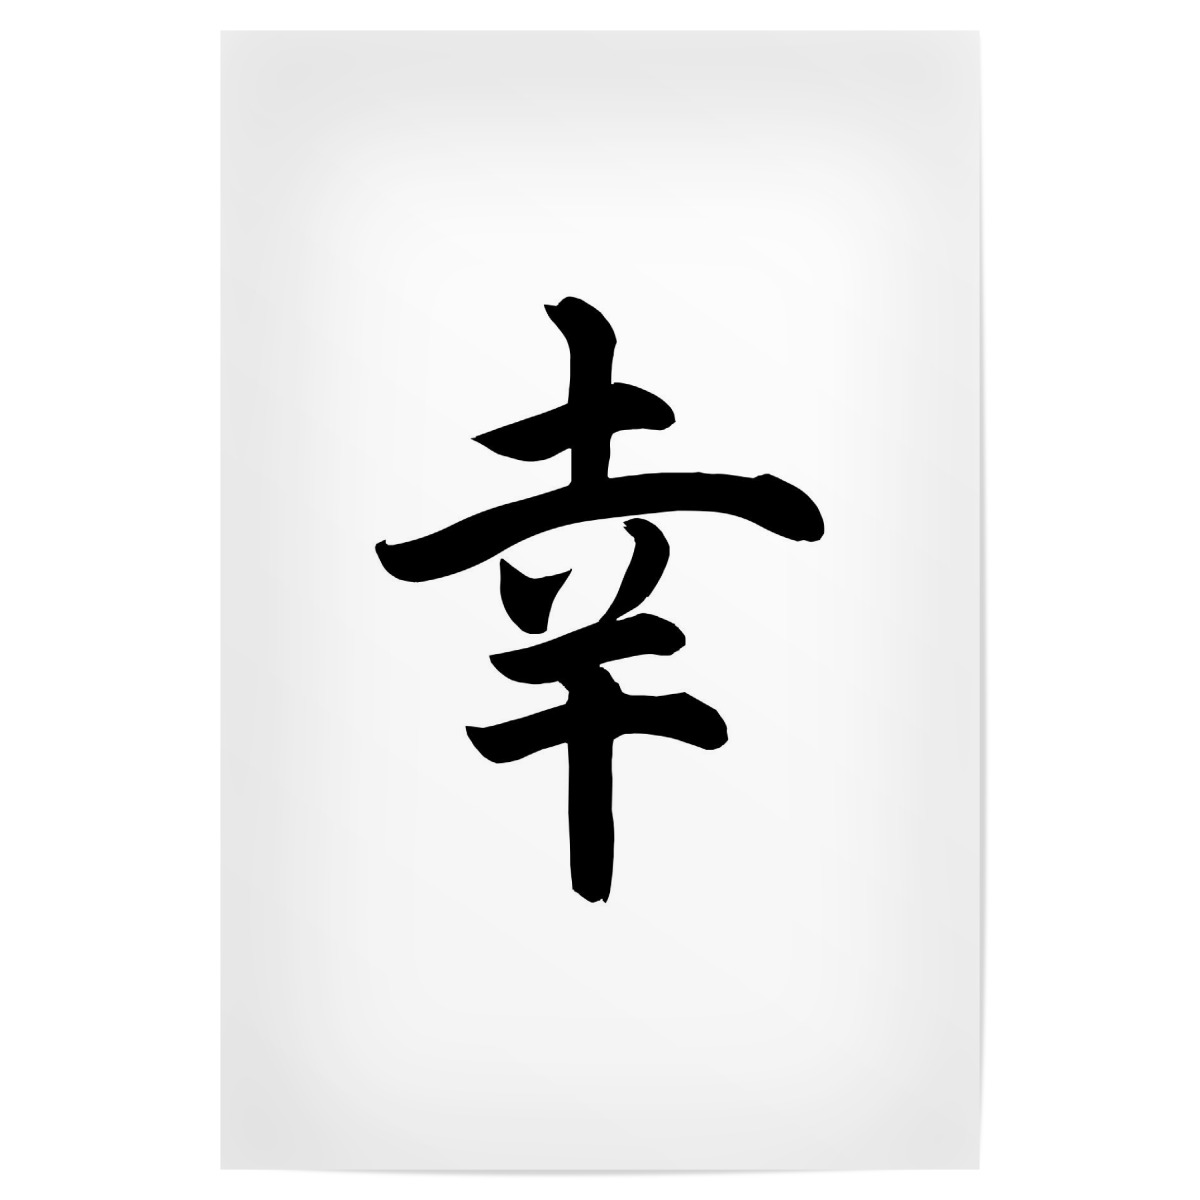 Purchase The Happiness Japanese Calligraphy Kanji Shiawase As A